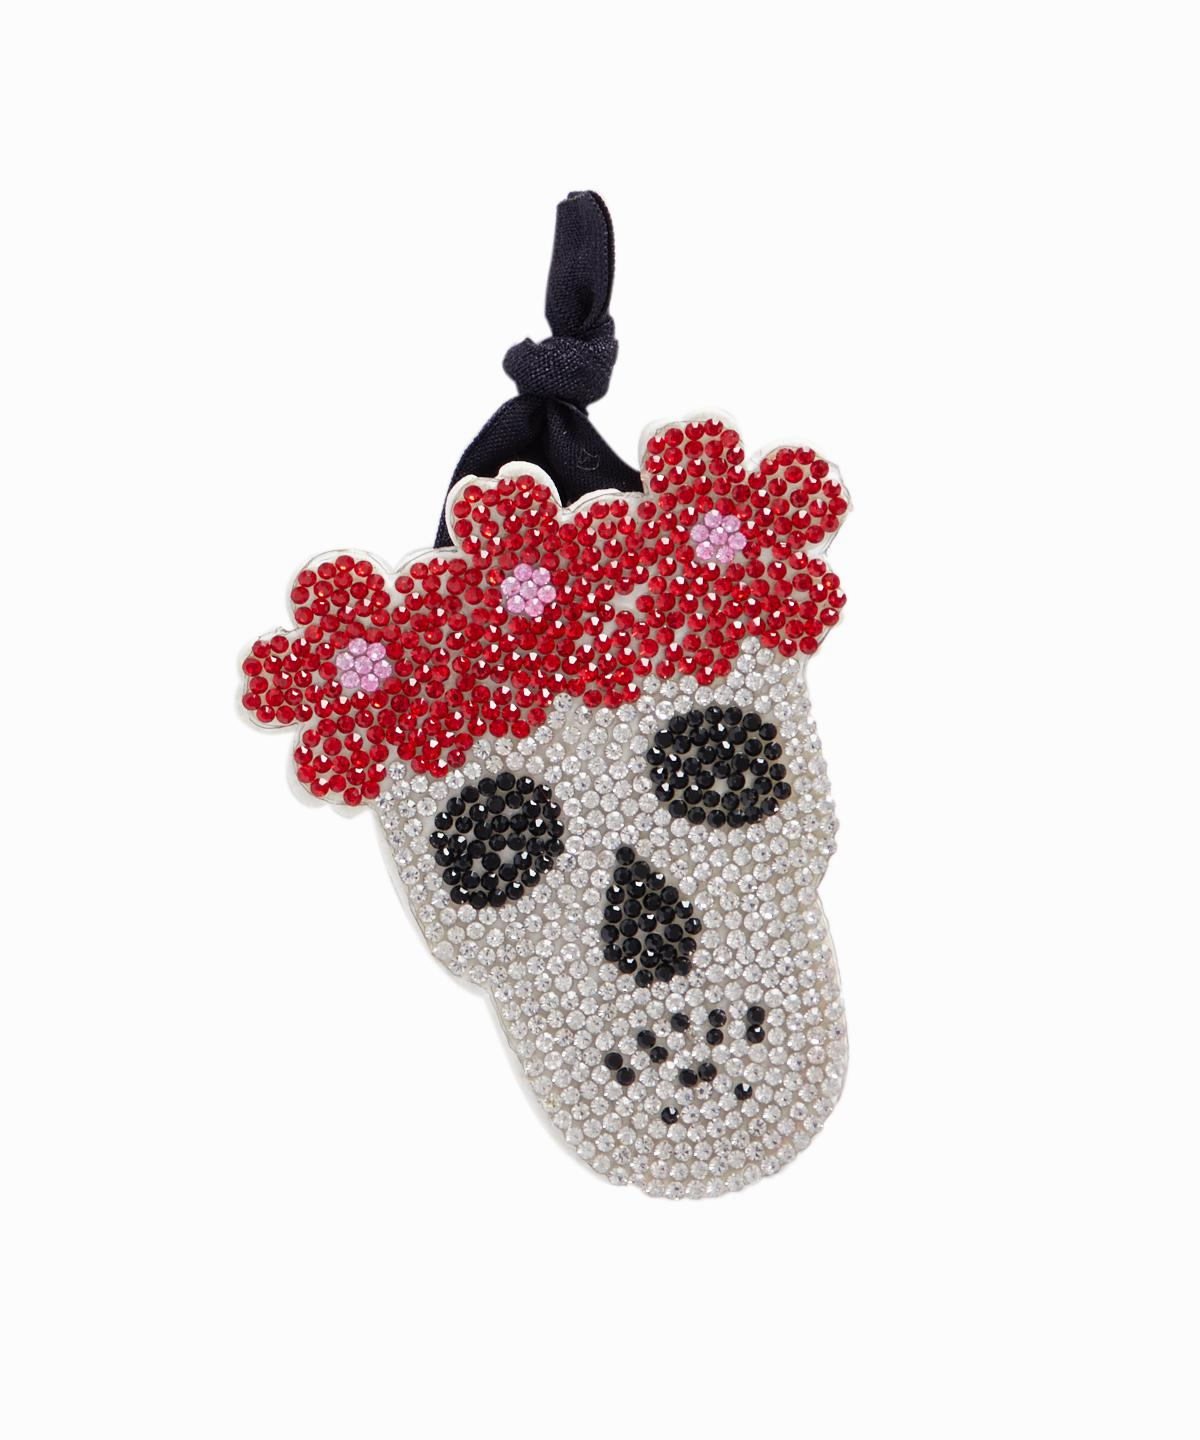 Exclusive Crystal Skull Ponytail Holder